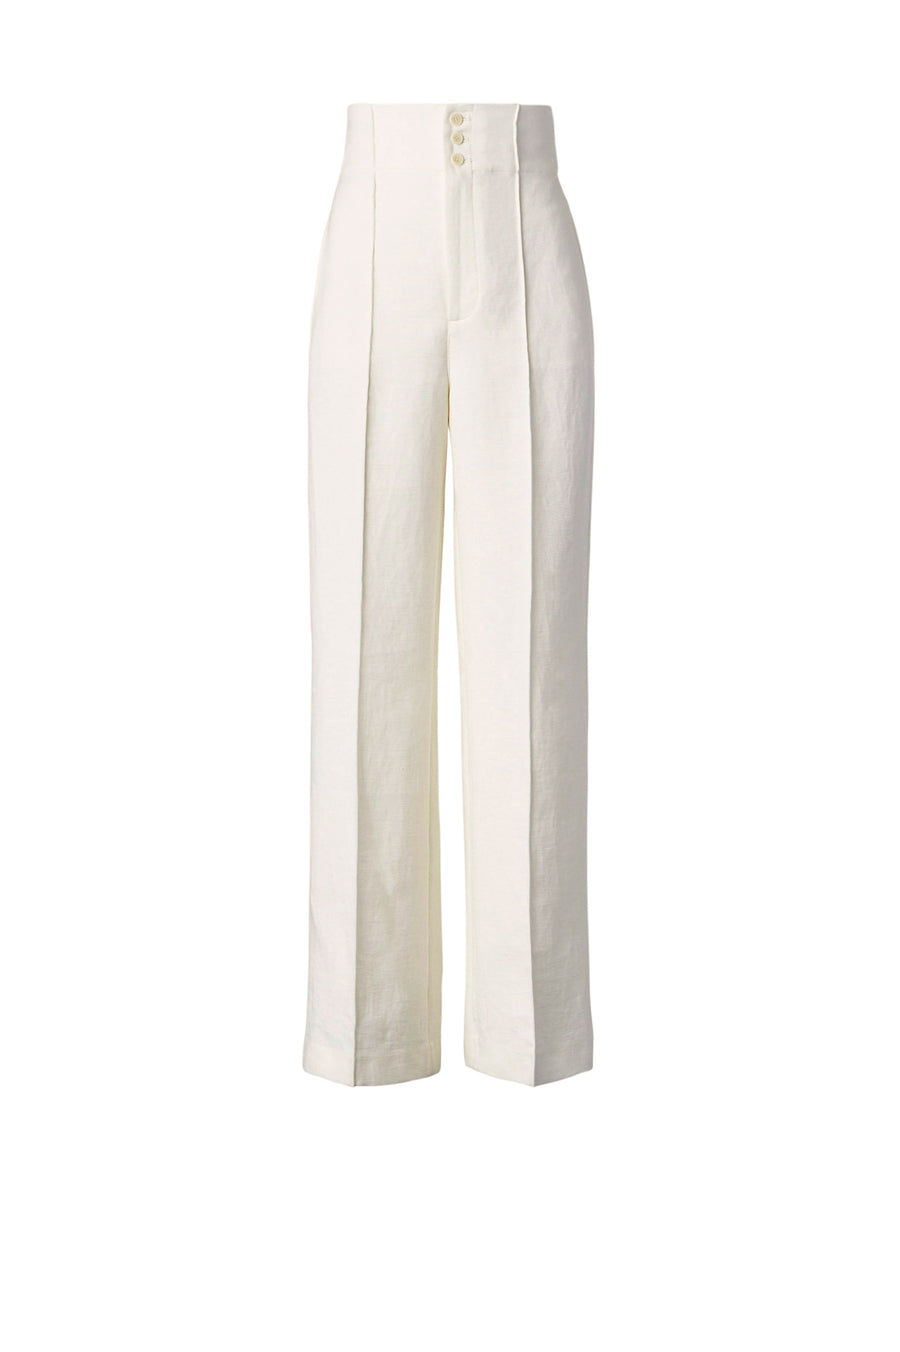 Sitting at a flattering high rise, the pant features front zip fastening with side pockets and falls to a tapered leg.